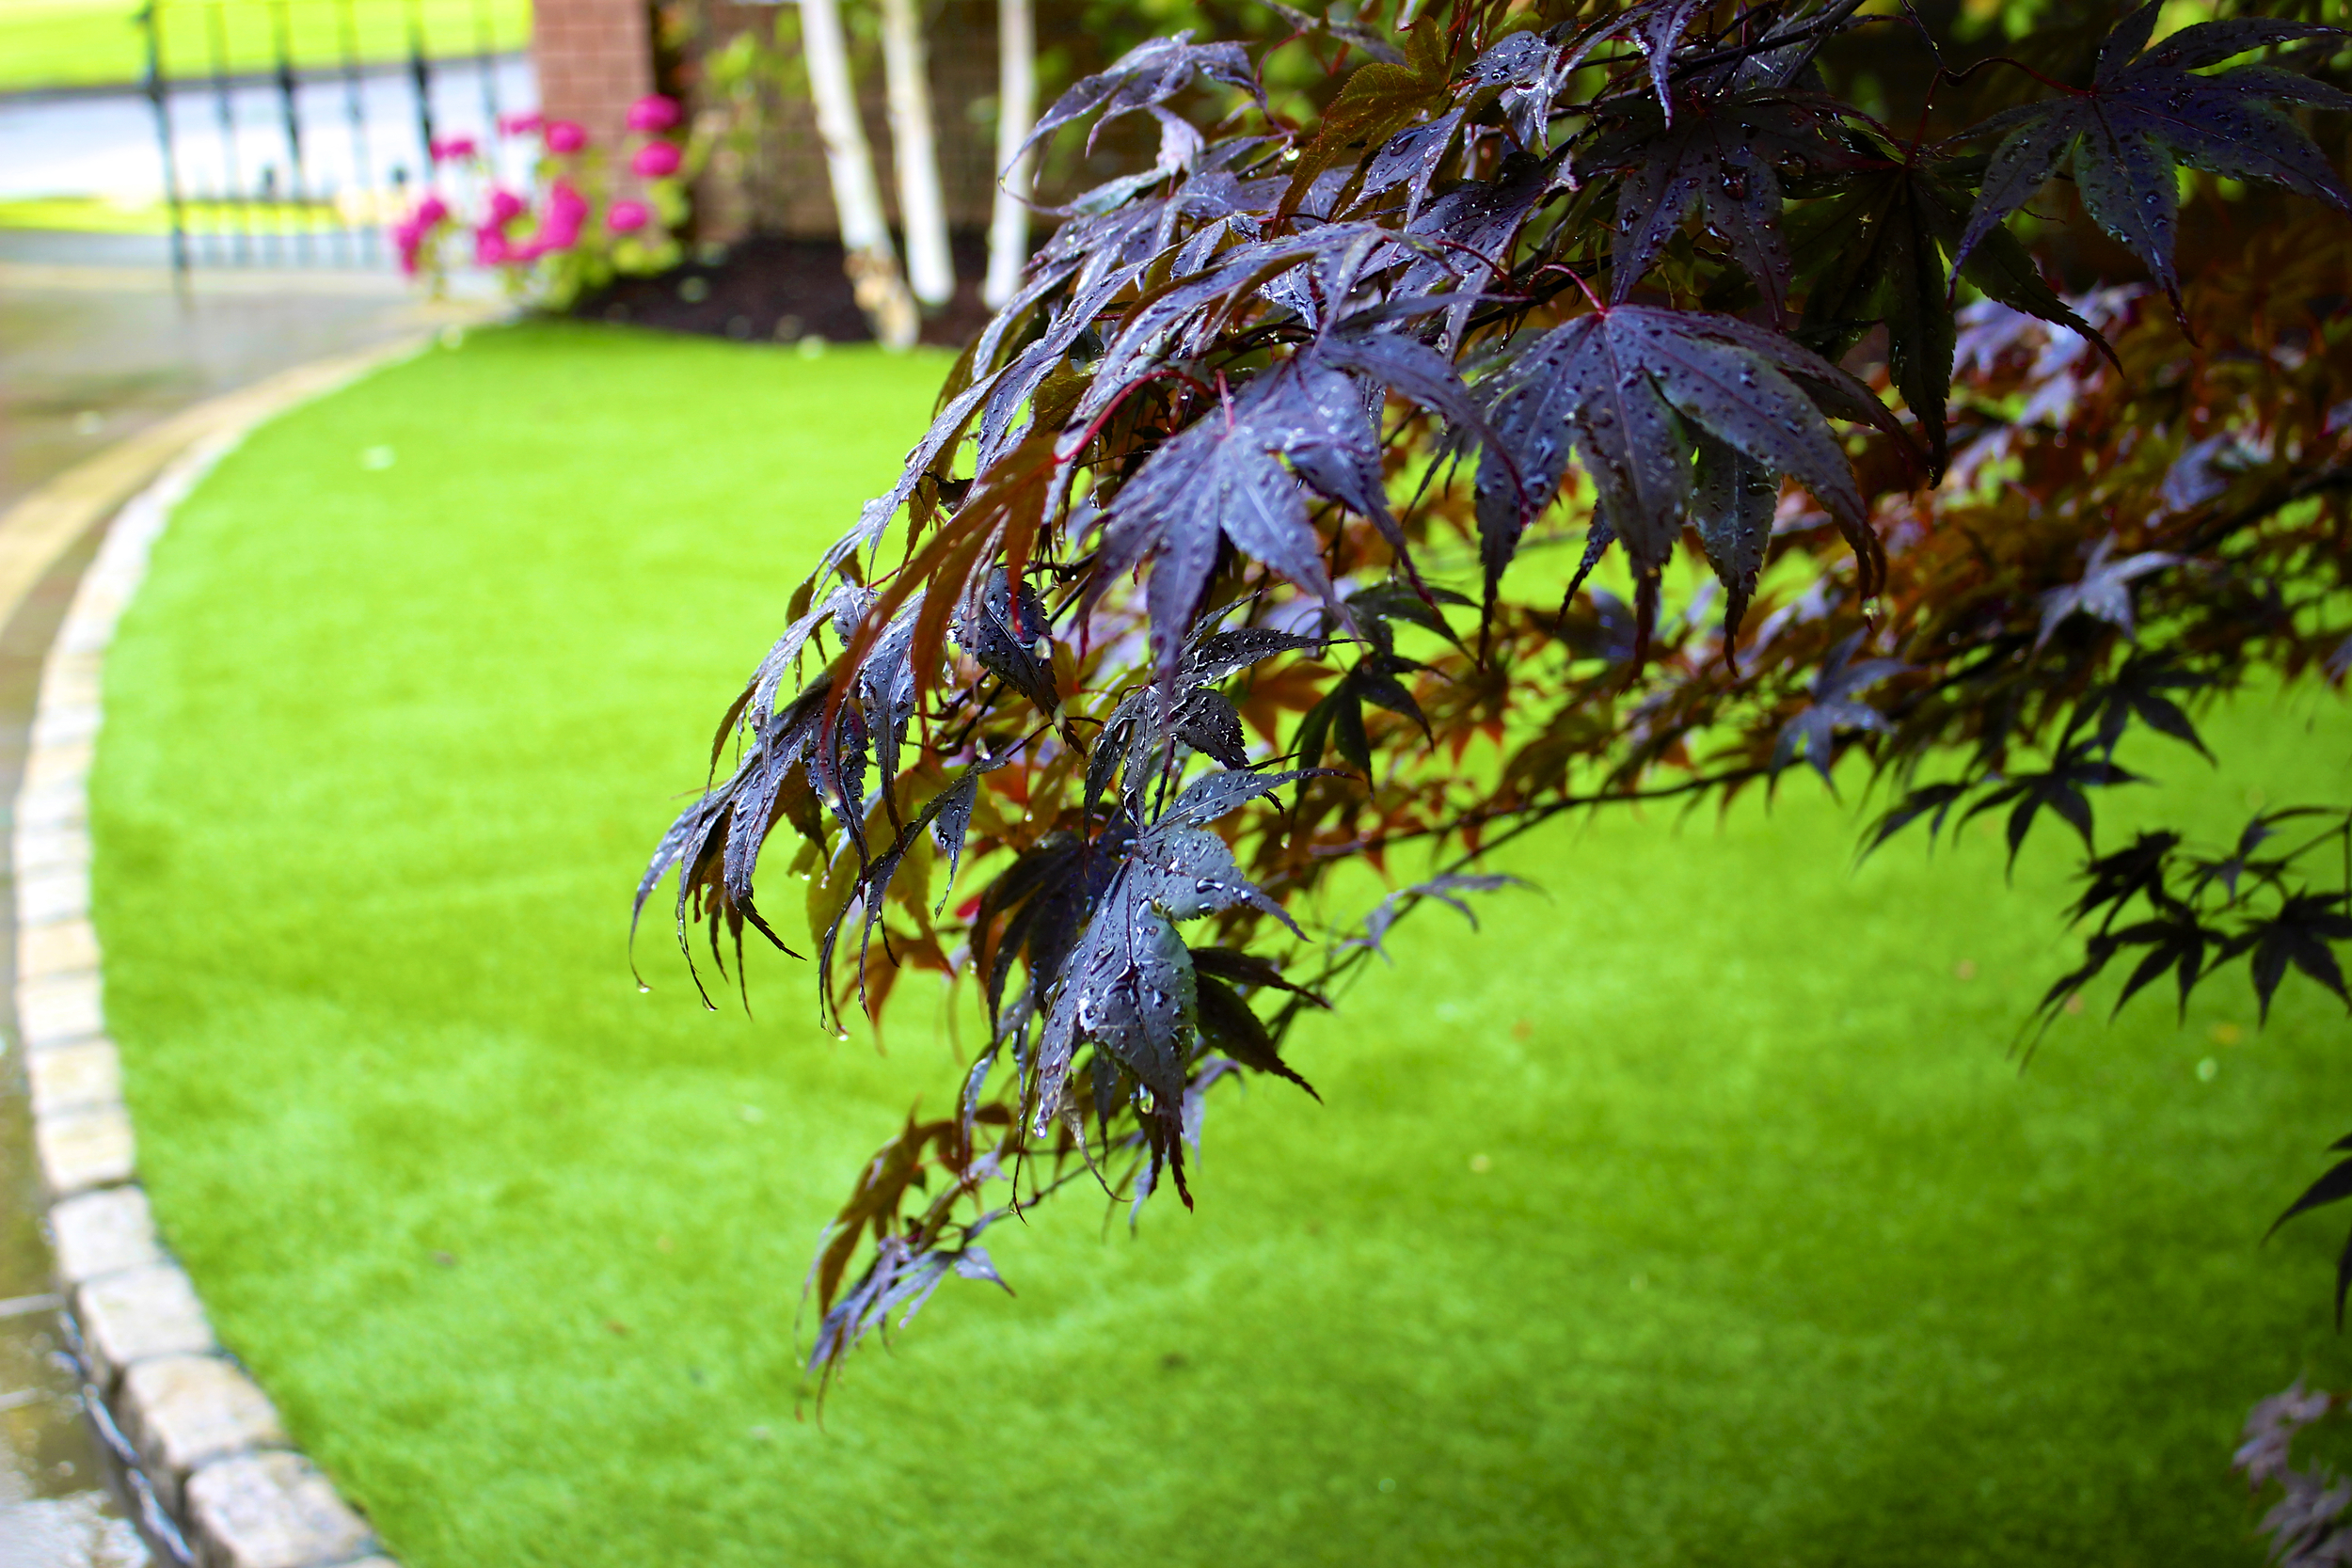 Maple tree and lawn turf